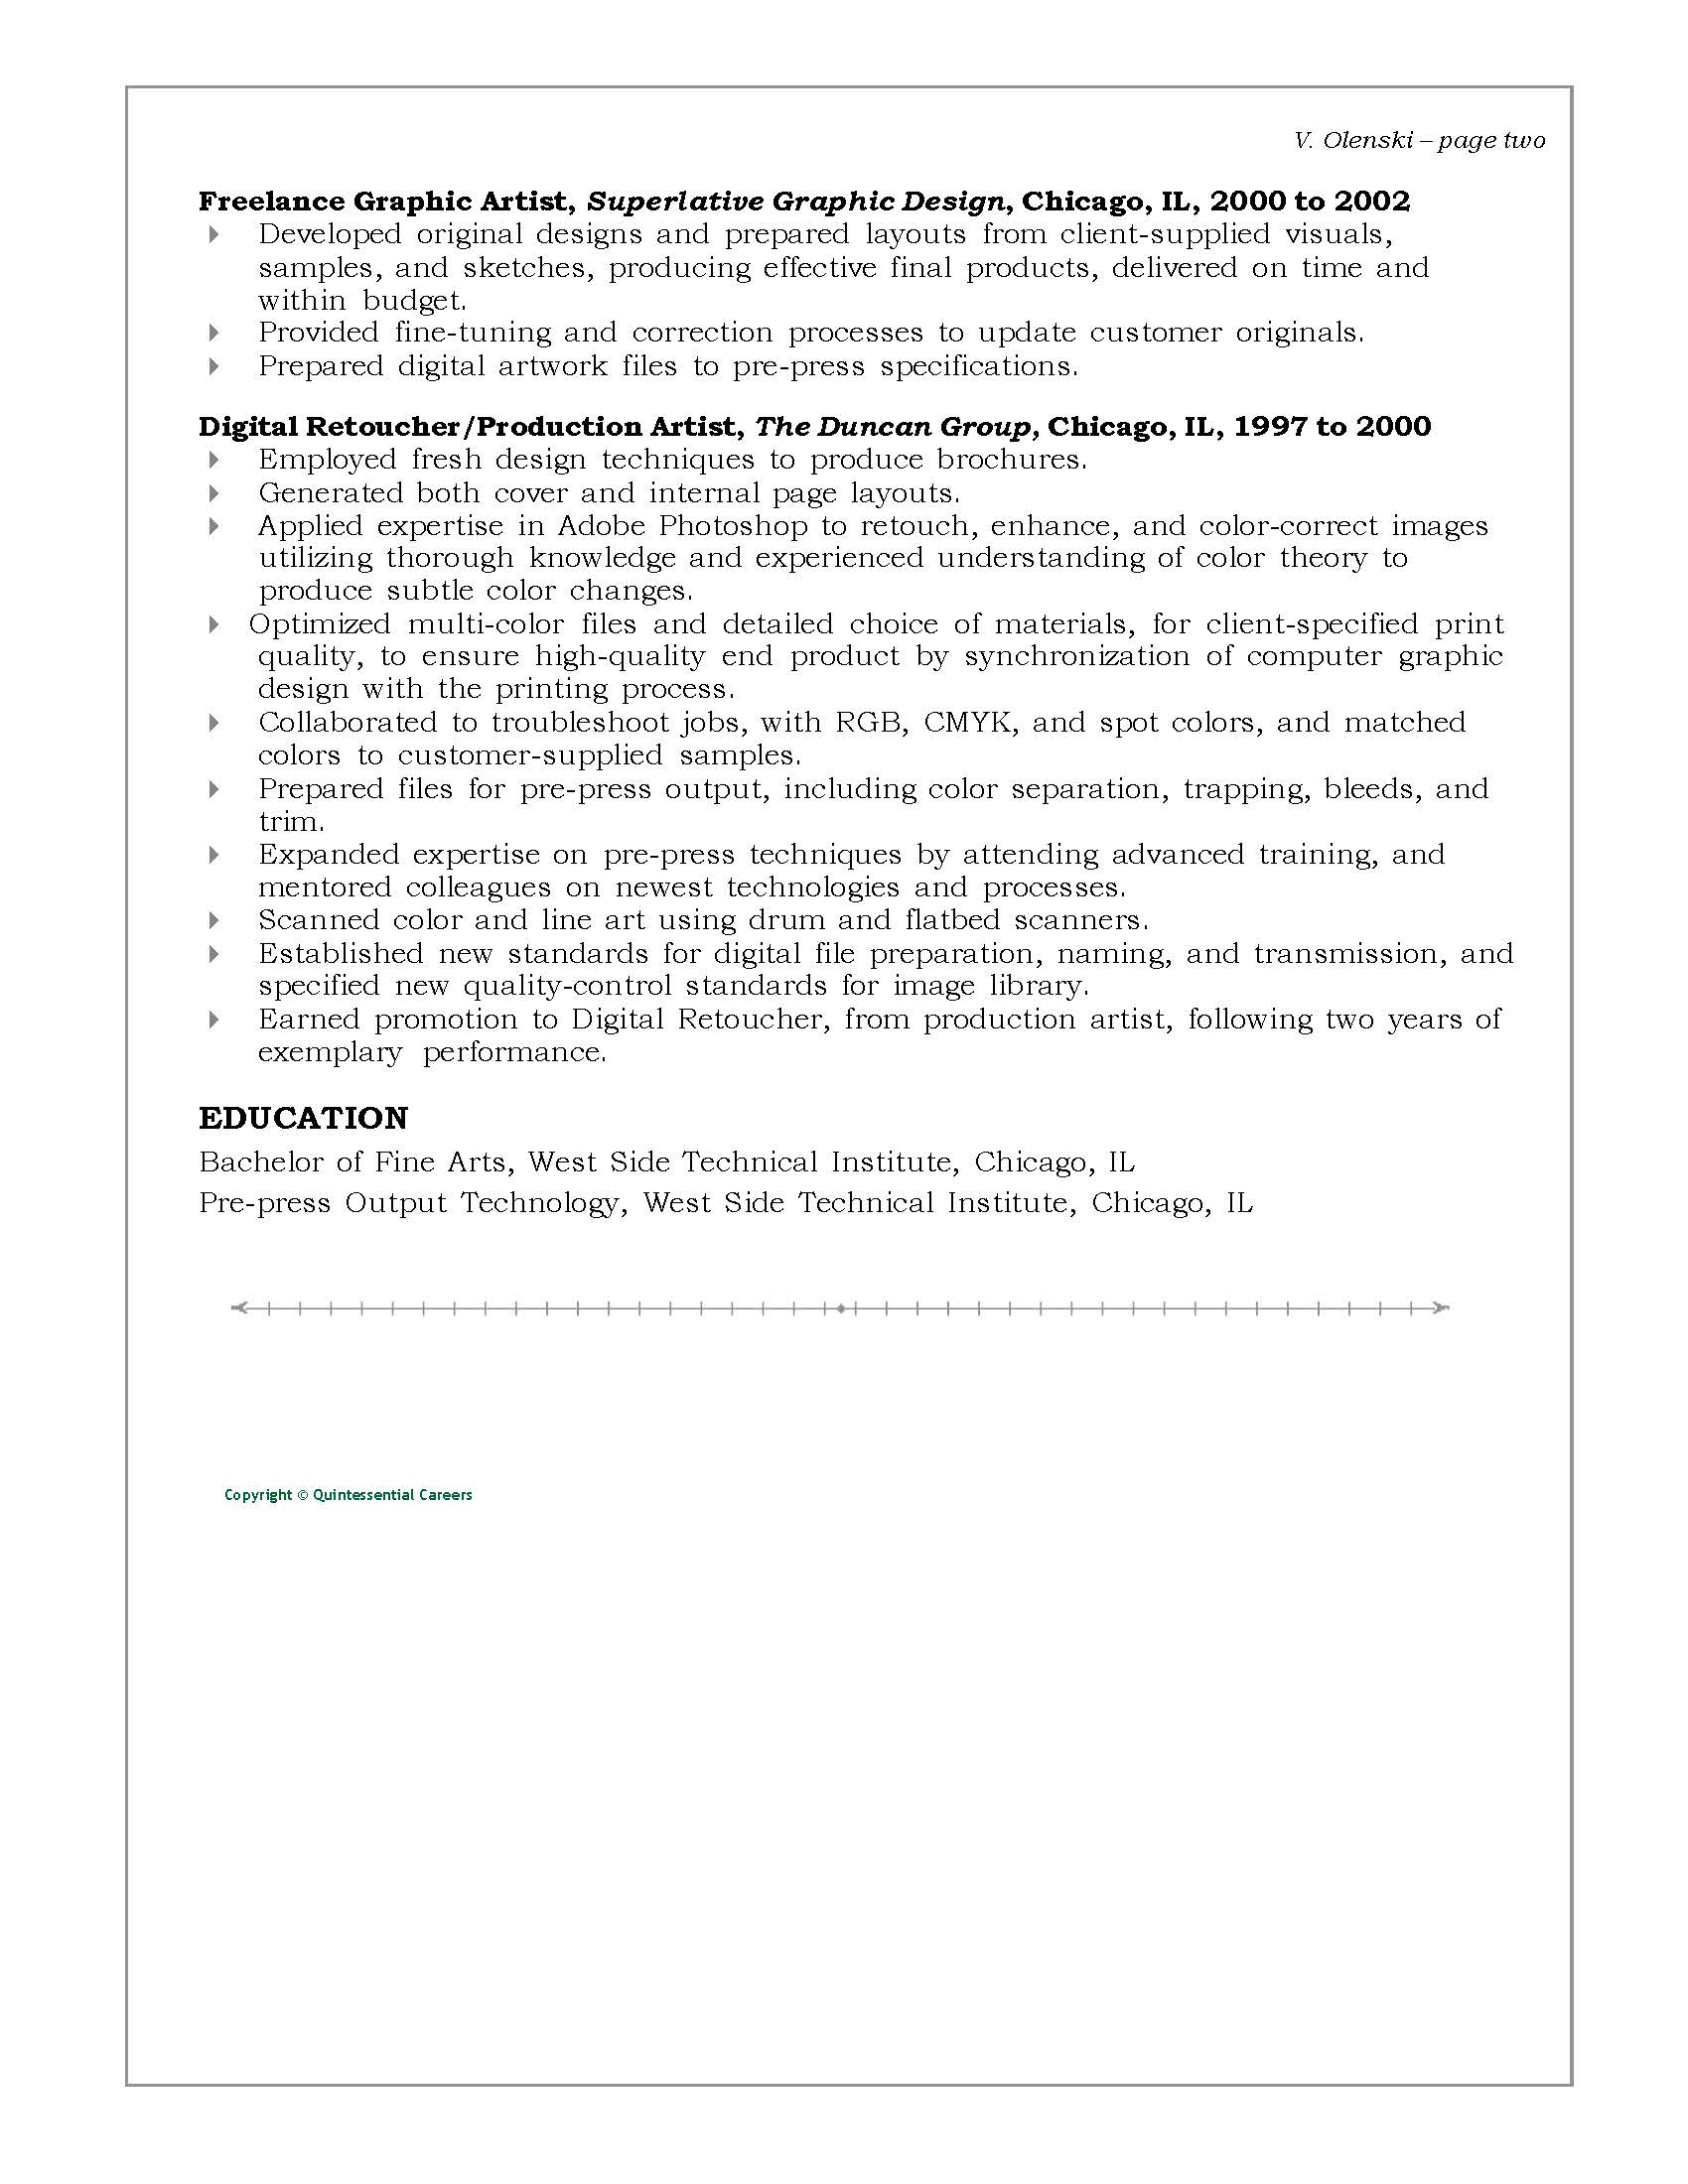 how to write a resume rockport bio data maker how to write a resume rockport how to write a great resume rockport institute resumes and